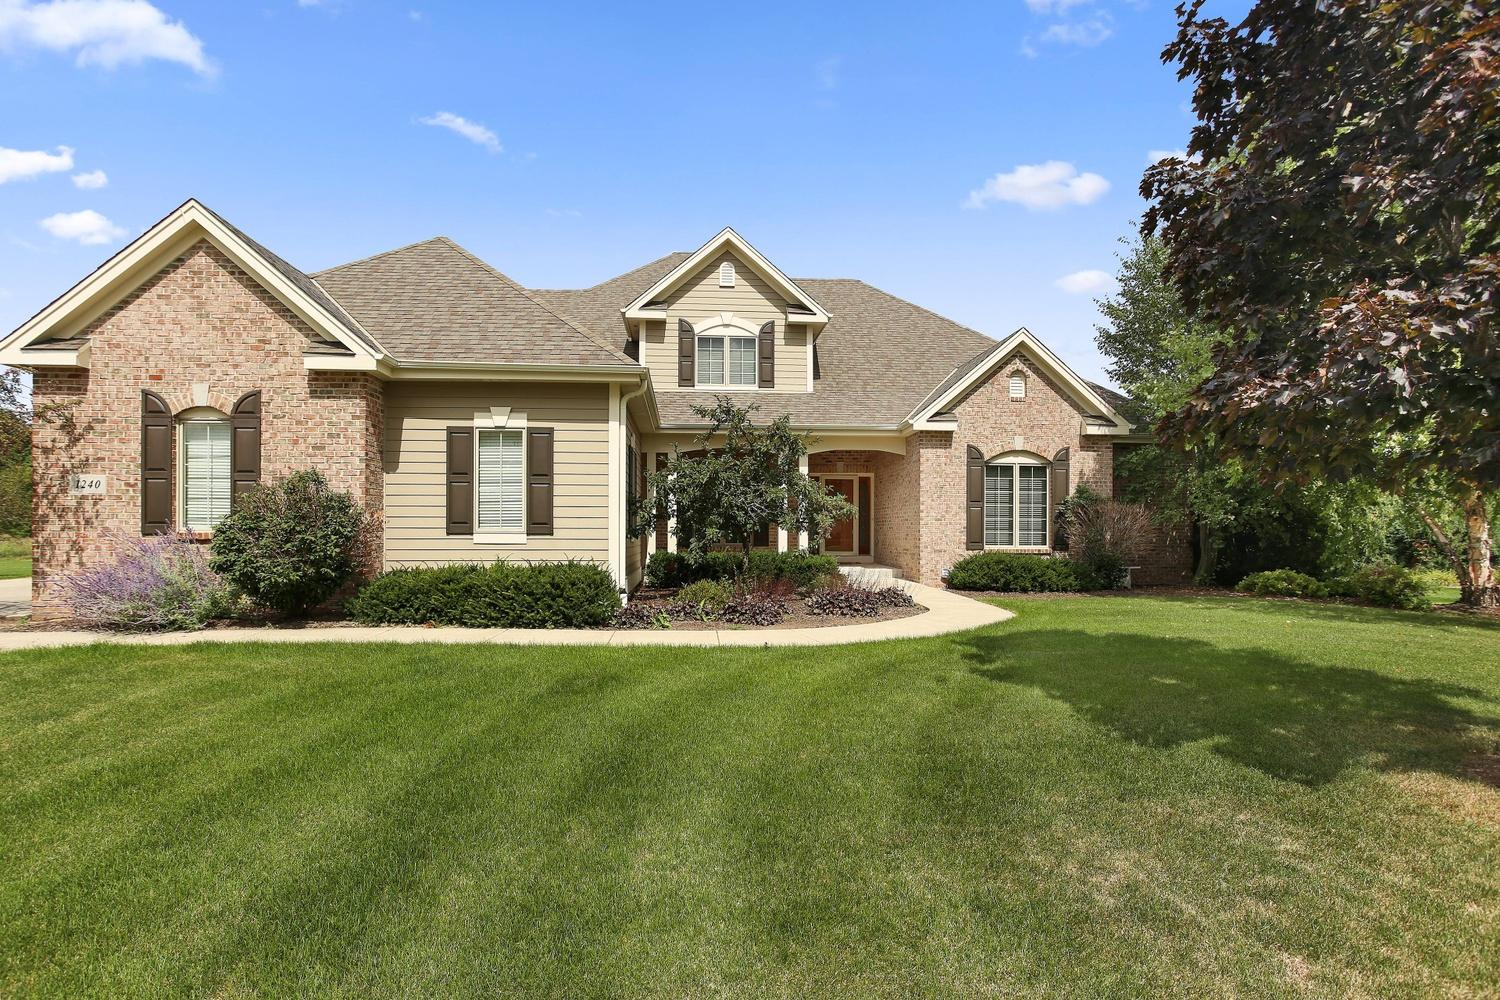 1240 Four Winds Way, Hartland, Wisconsin 53029, 5 Bedrooms Bedrooms, 13 Rooms Rooms,4 BathroomsBathrooms,Single-Family,For Sale,Four Winds Way,1654769